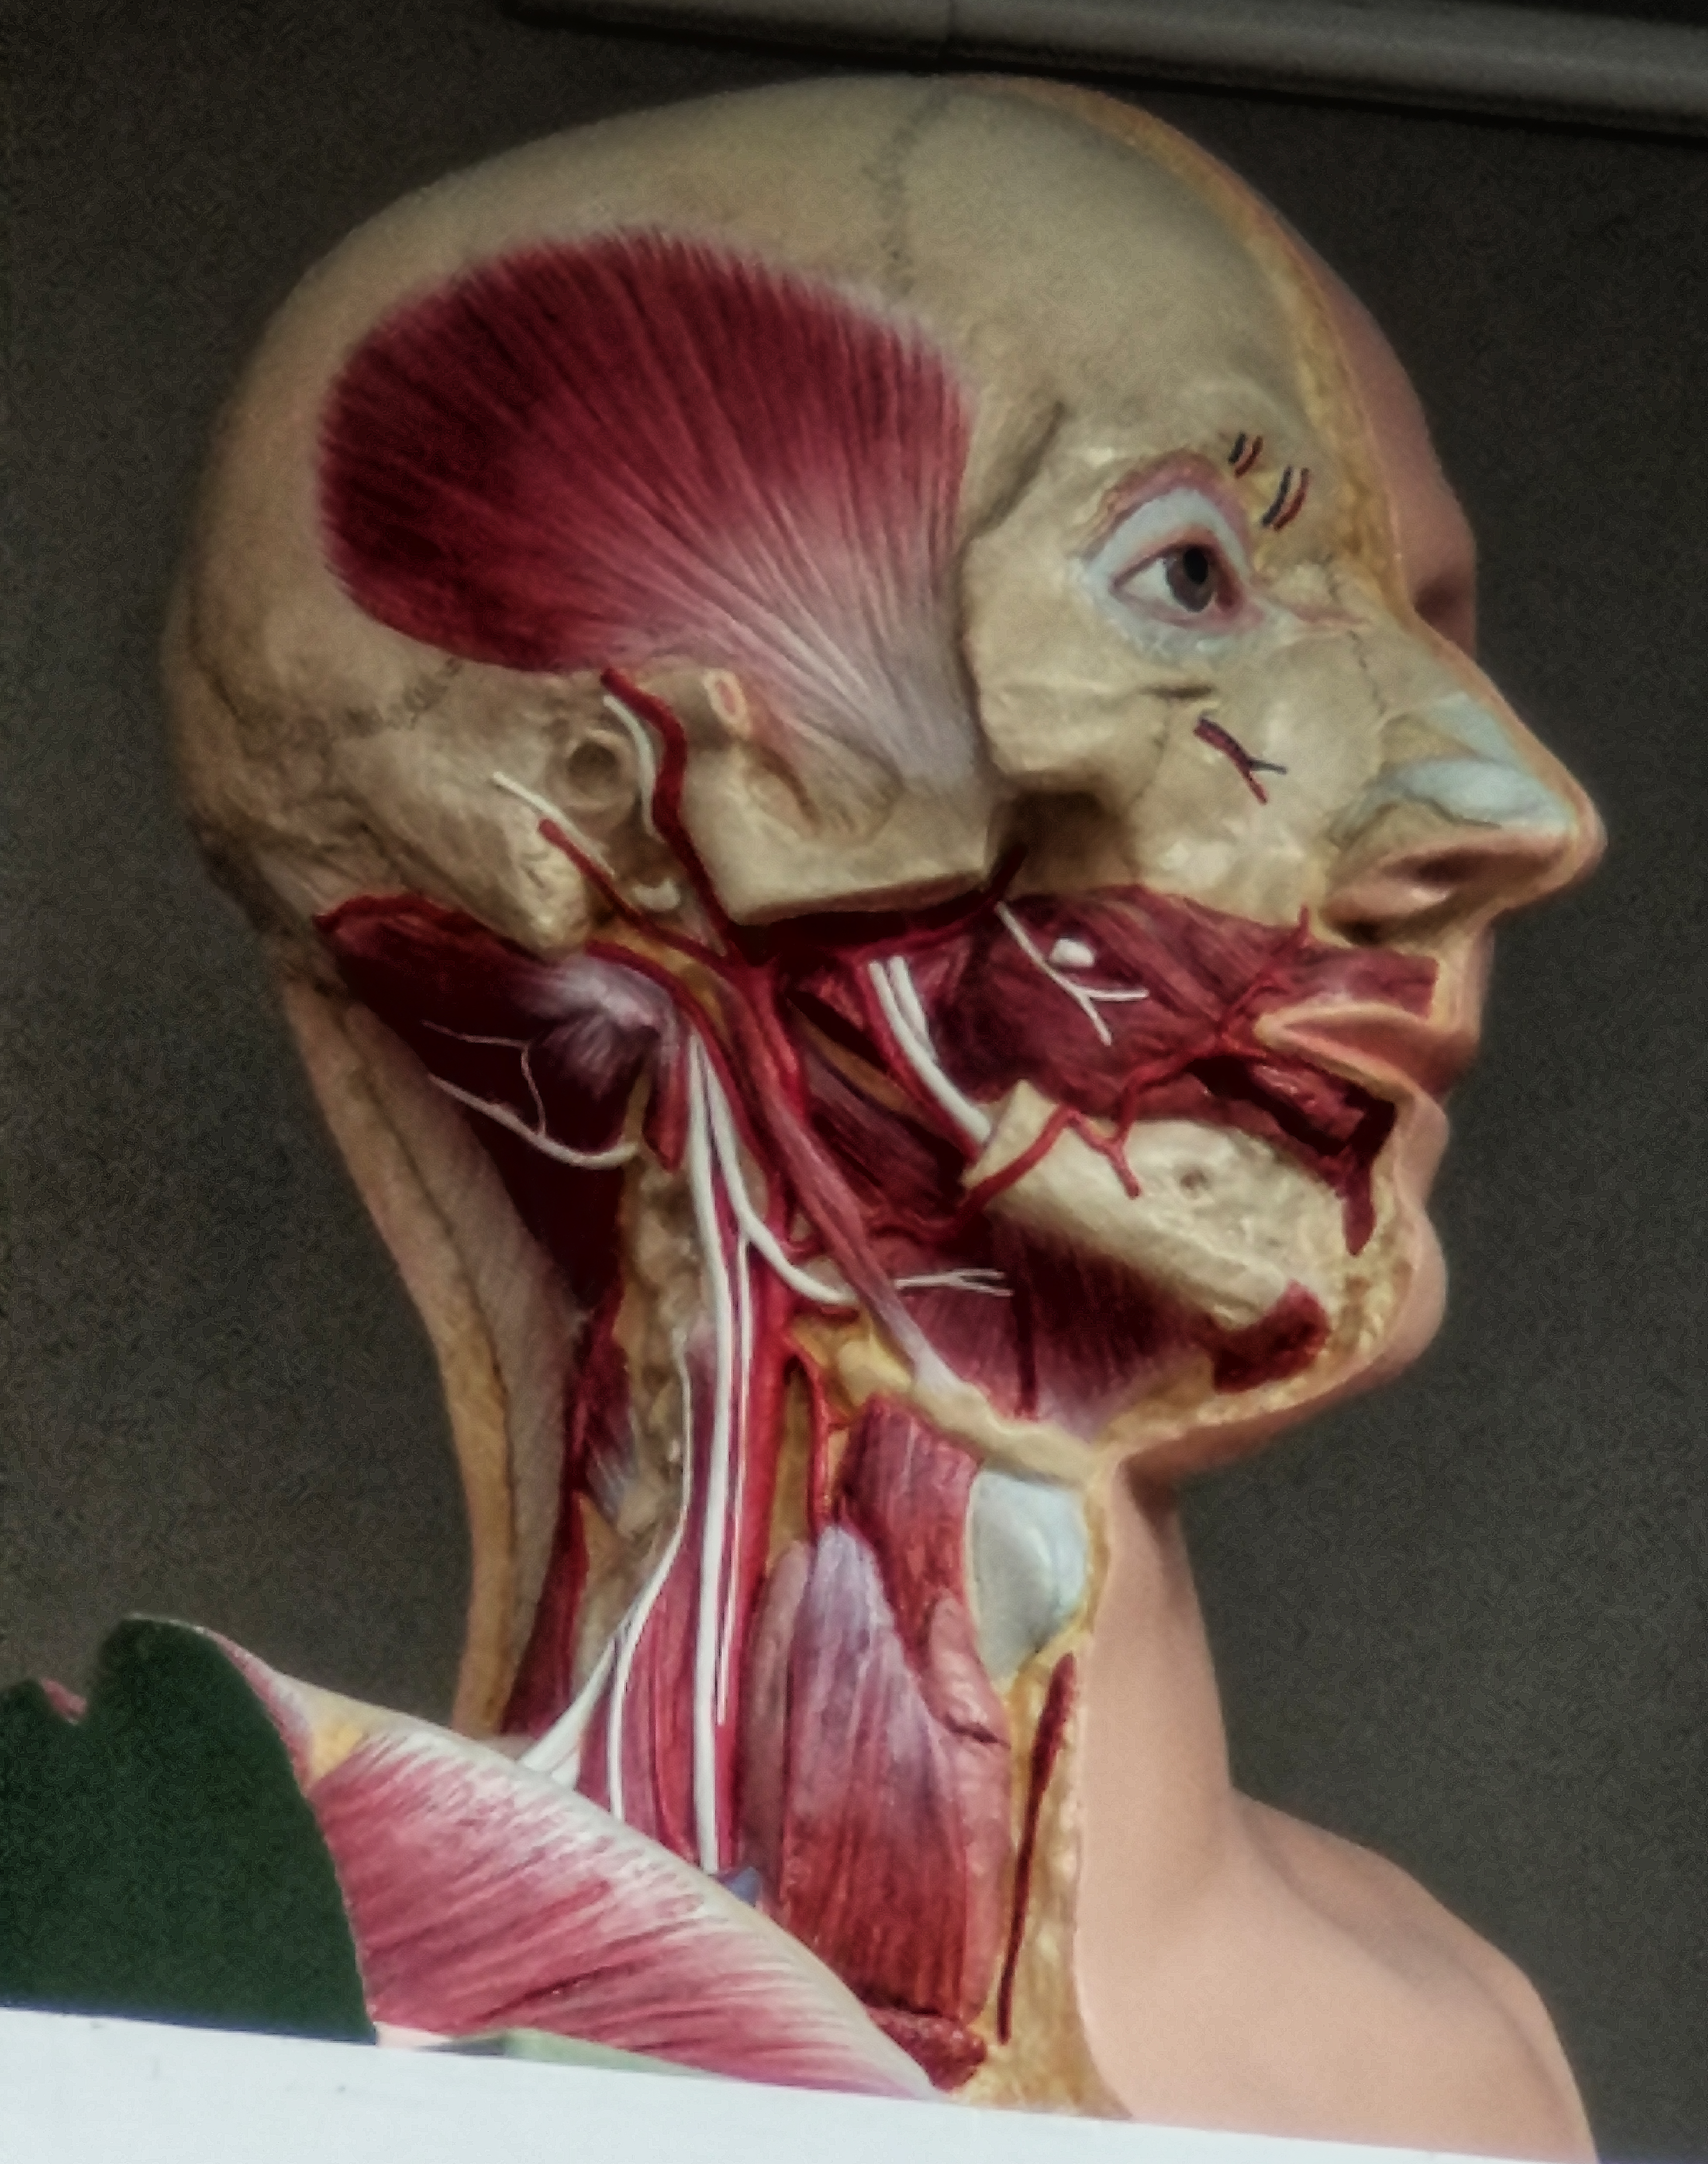 Anatomy Head Disection Level Three. Anatomical Head surface anatomy Dissection from life 1917-1920